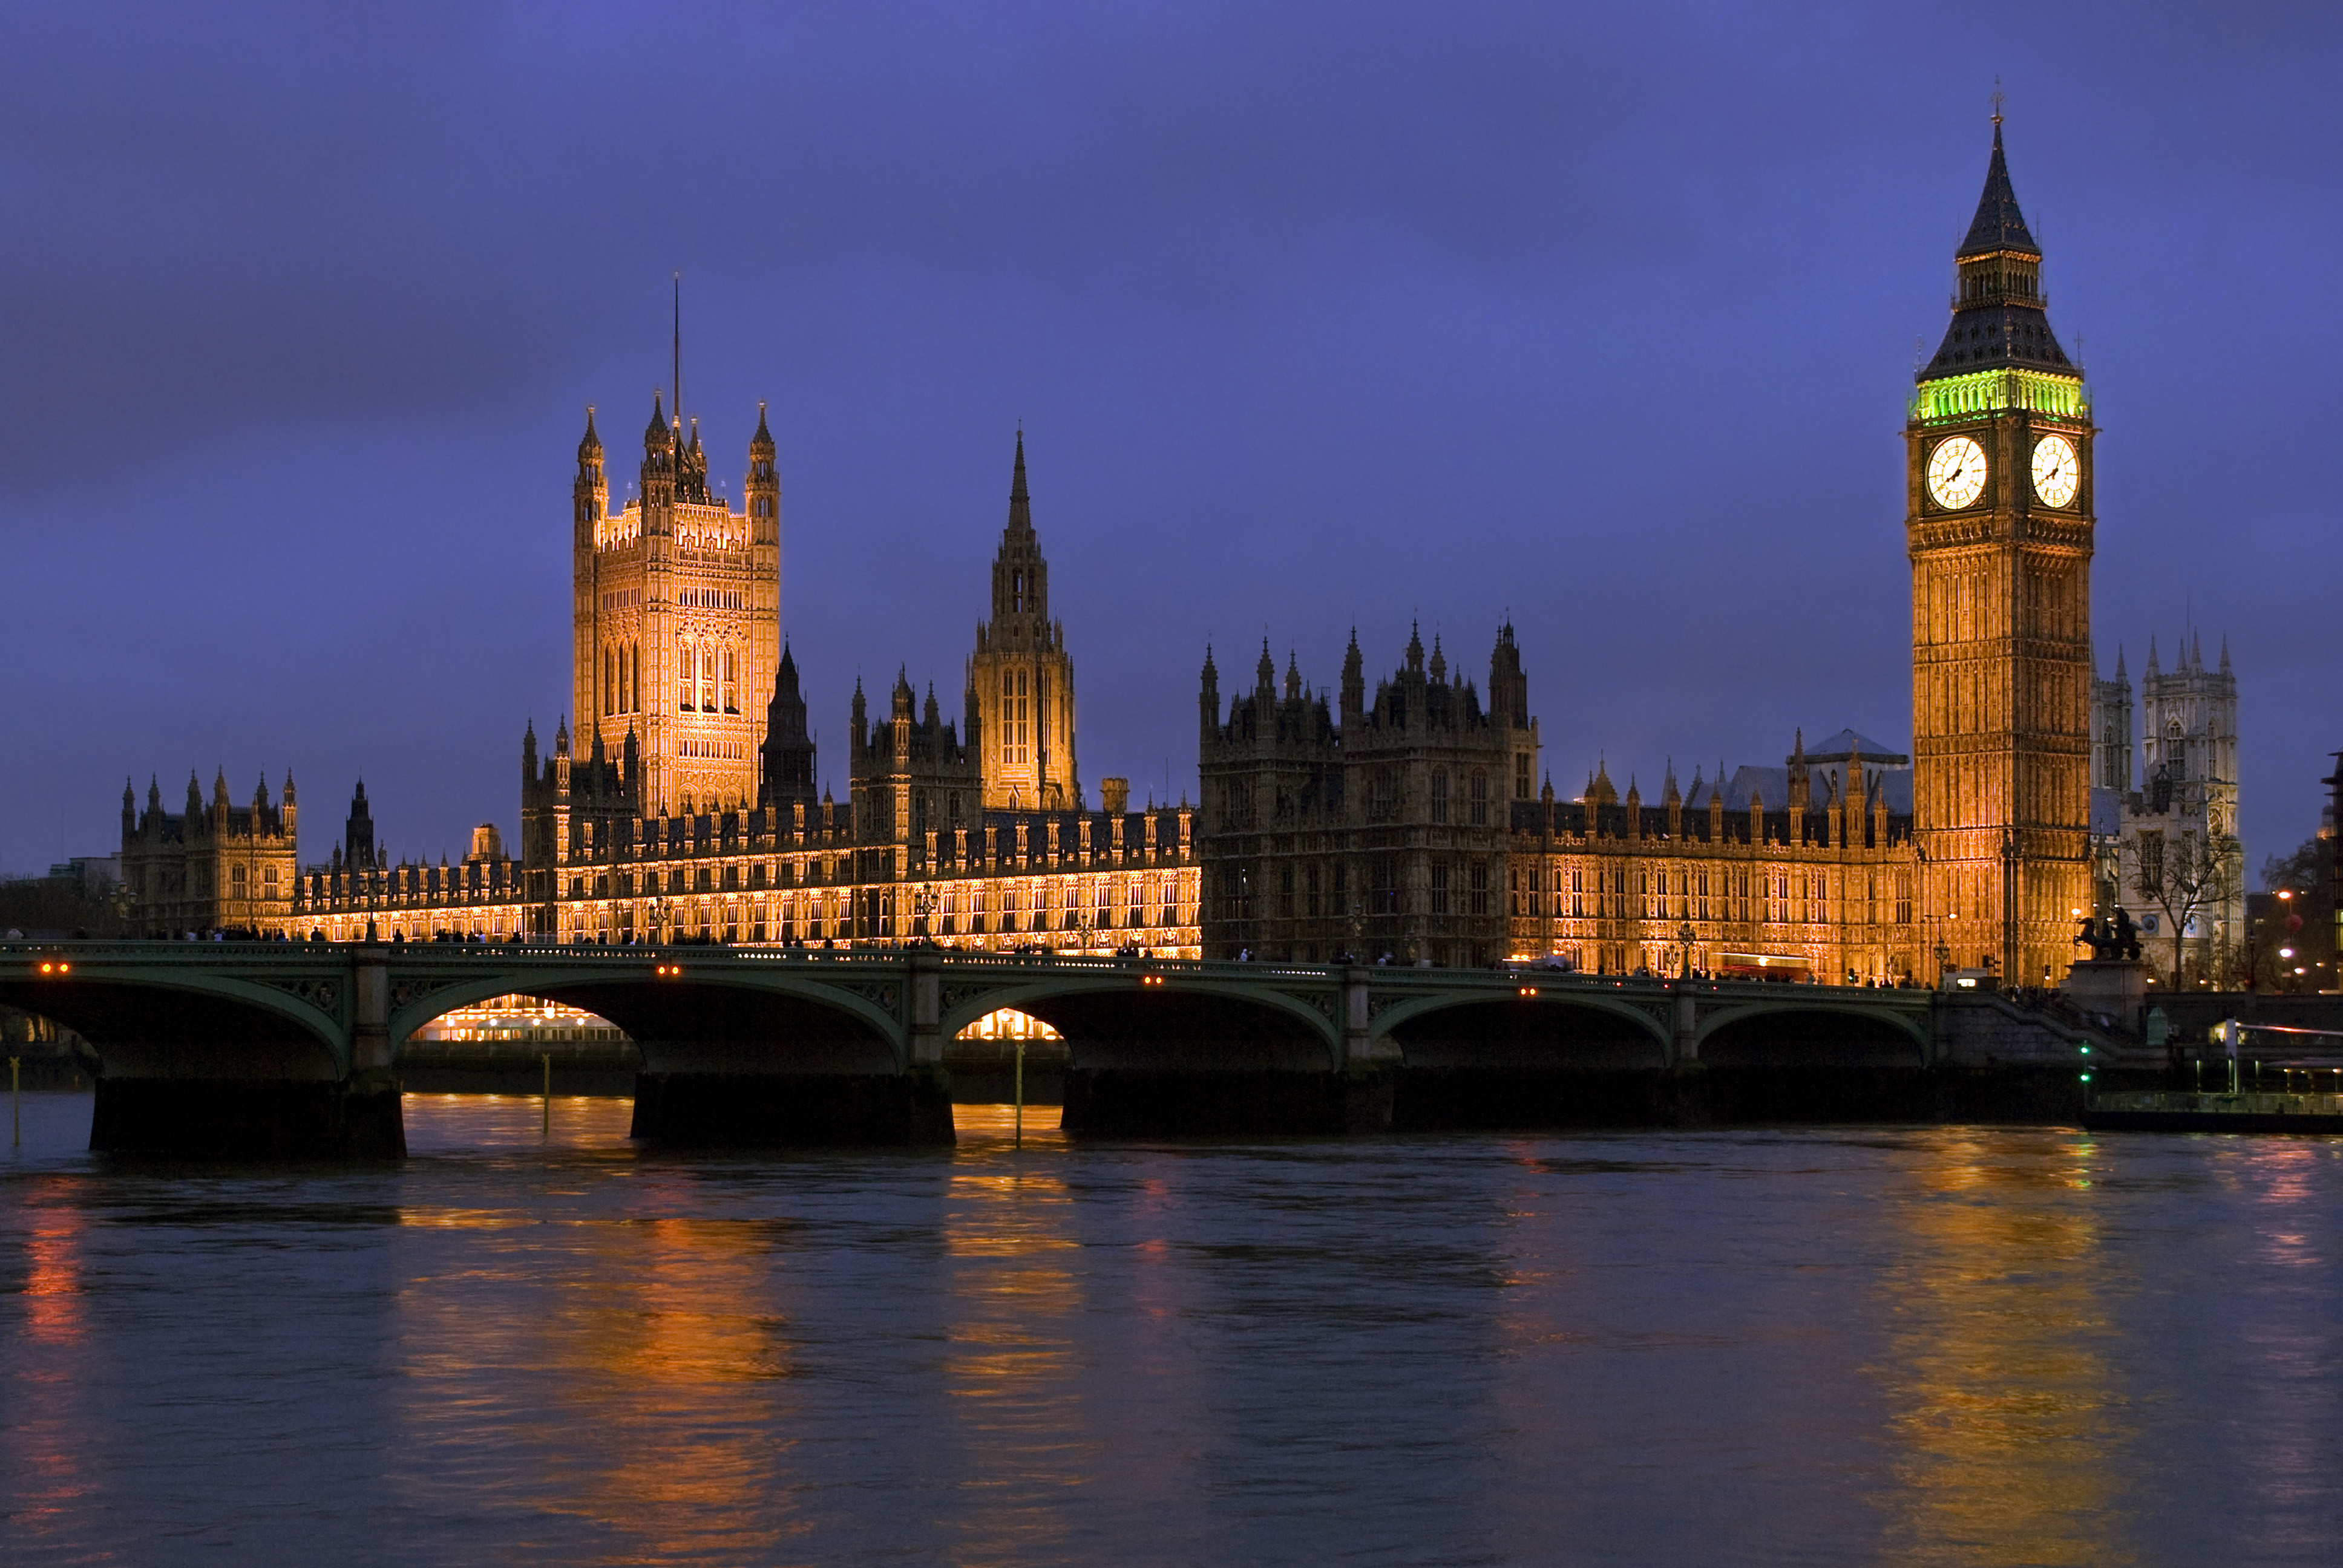 Houses of Parliament, London (photo credit: Y. Ballester/flickr)